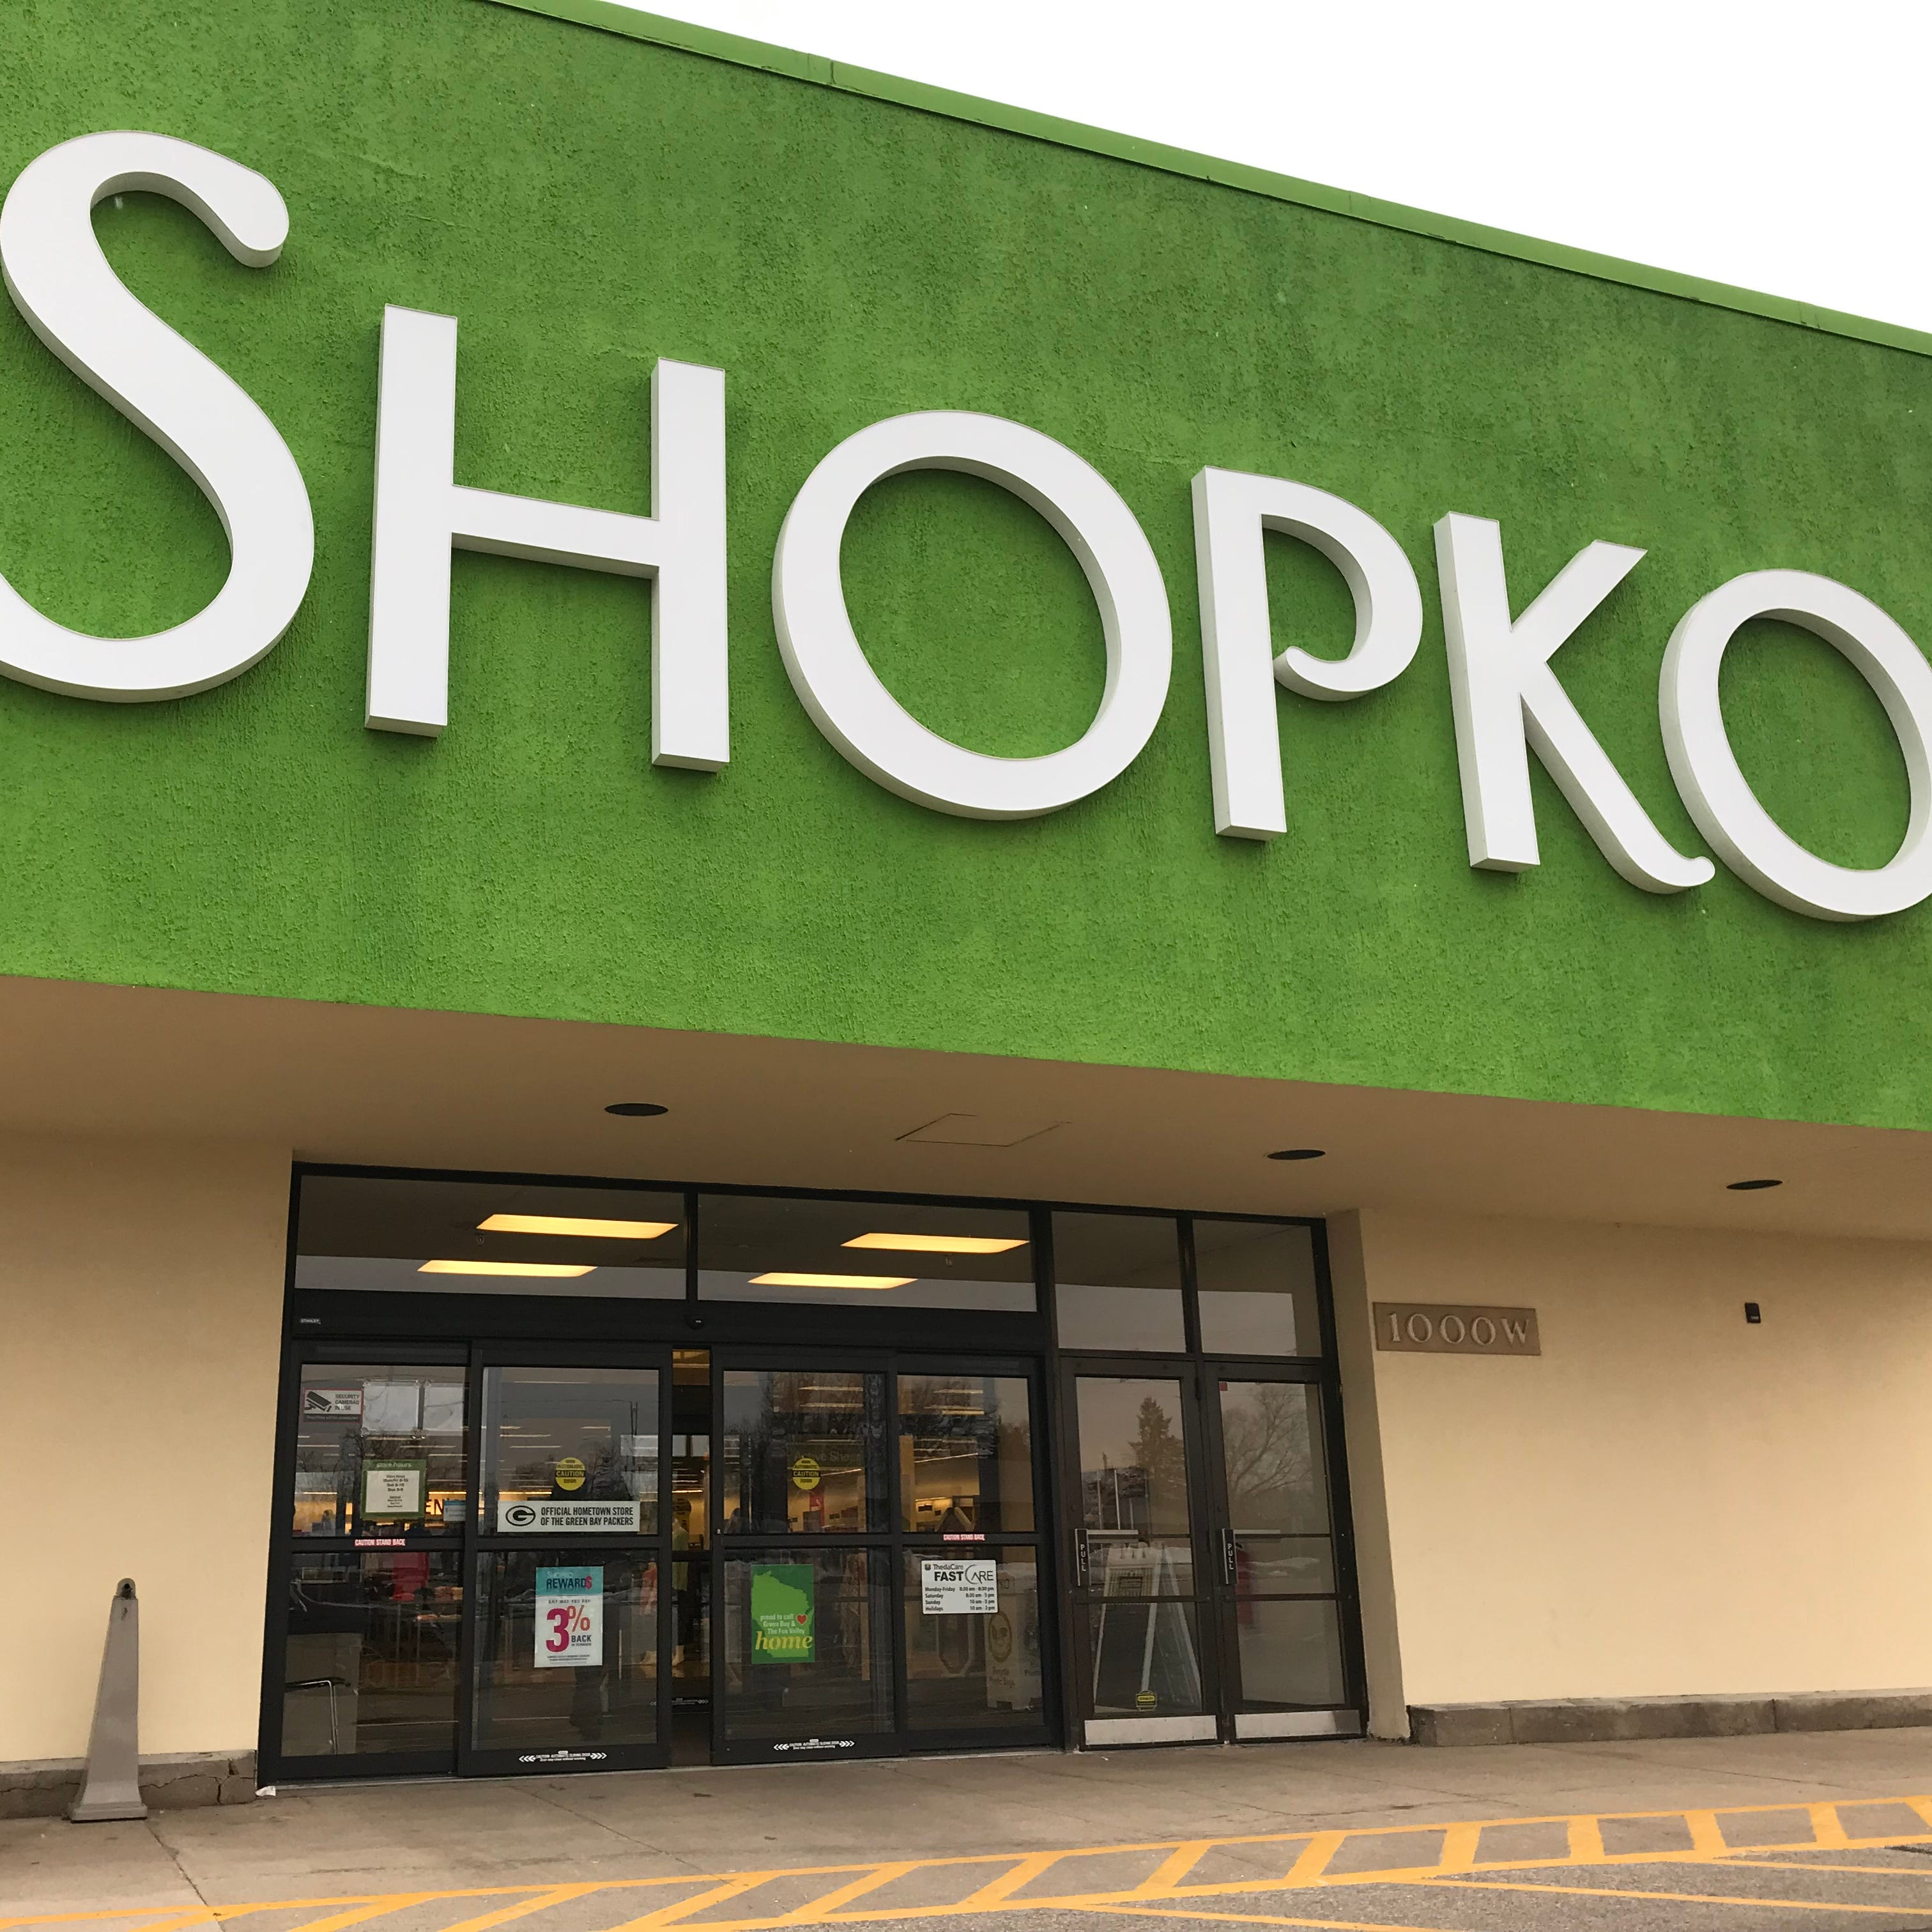 Jayme Closs, Shopko's closures, Packers' Mike Pettine: Wisconsin loved these stories